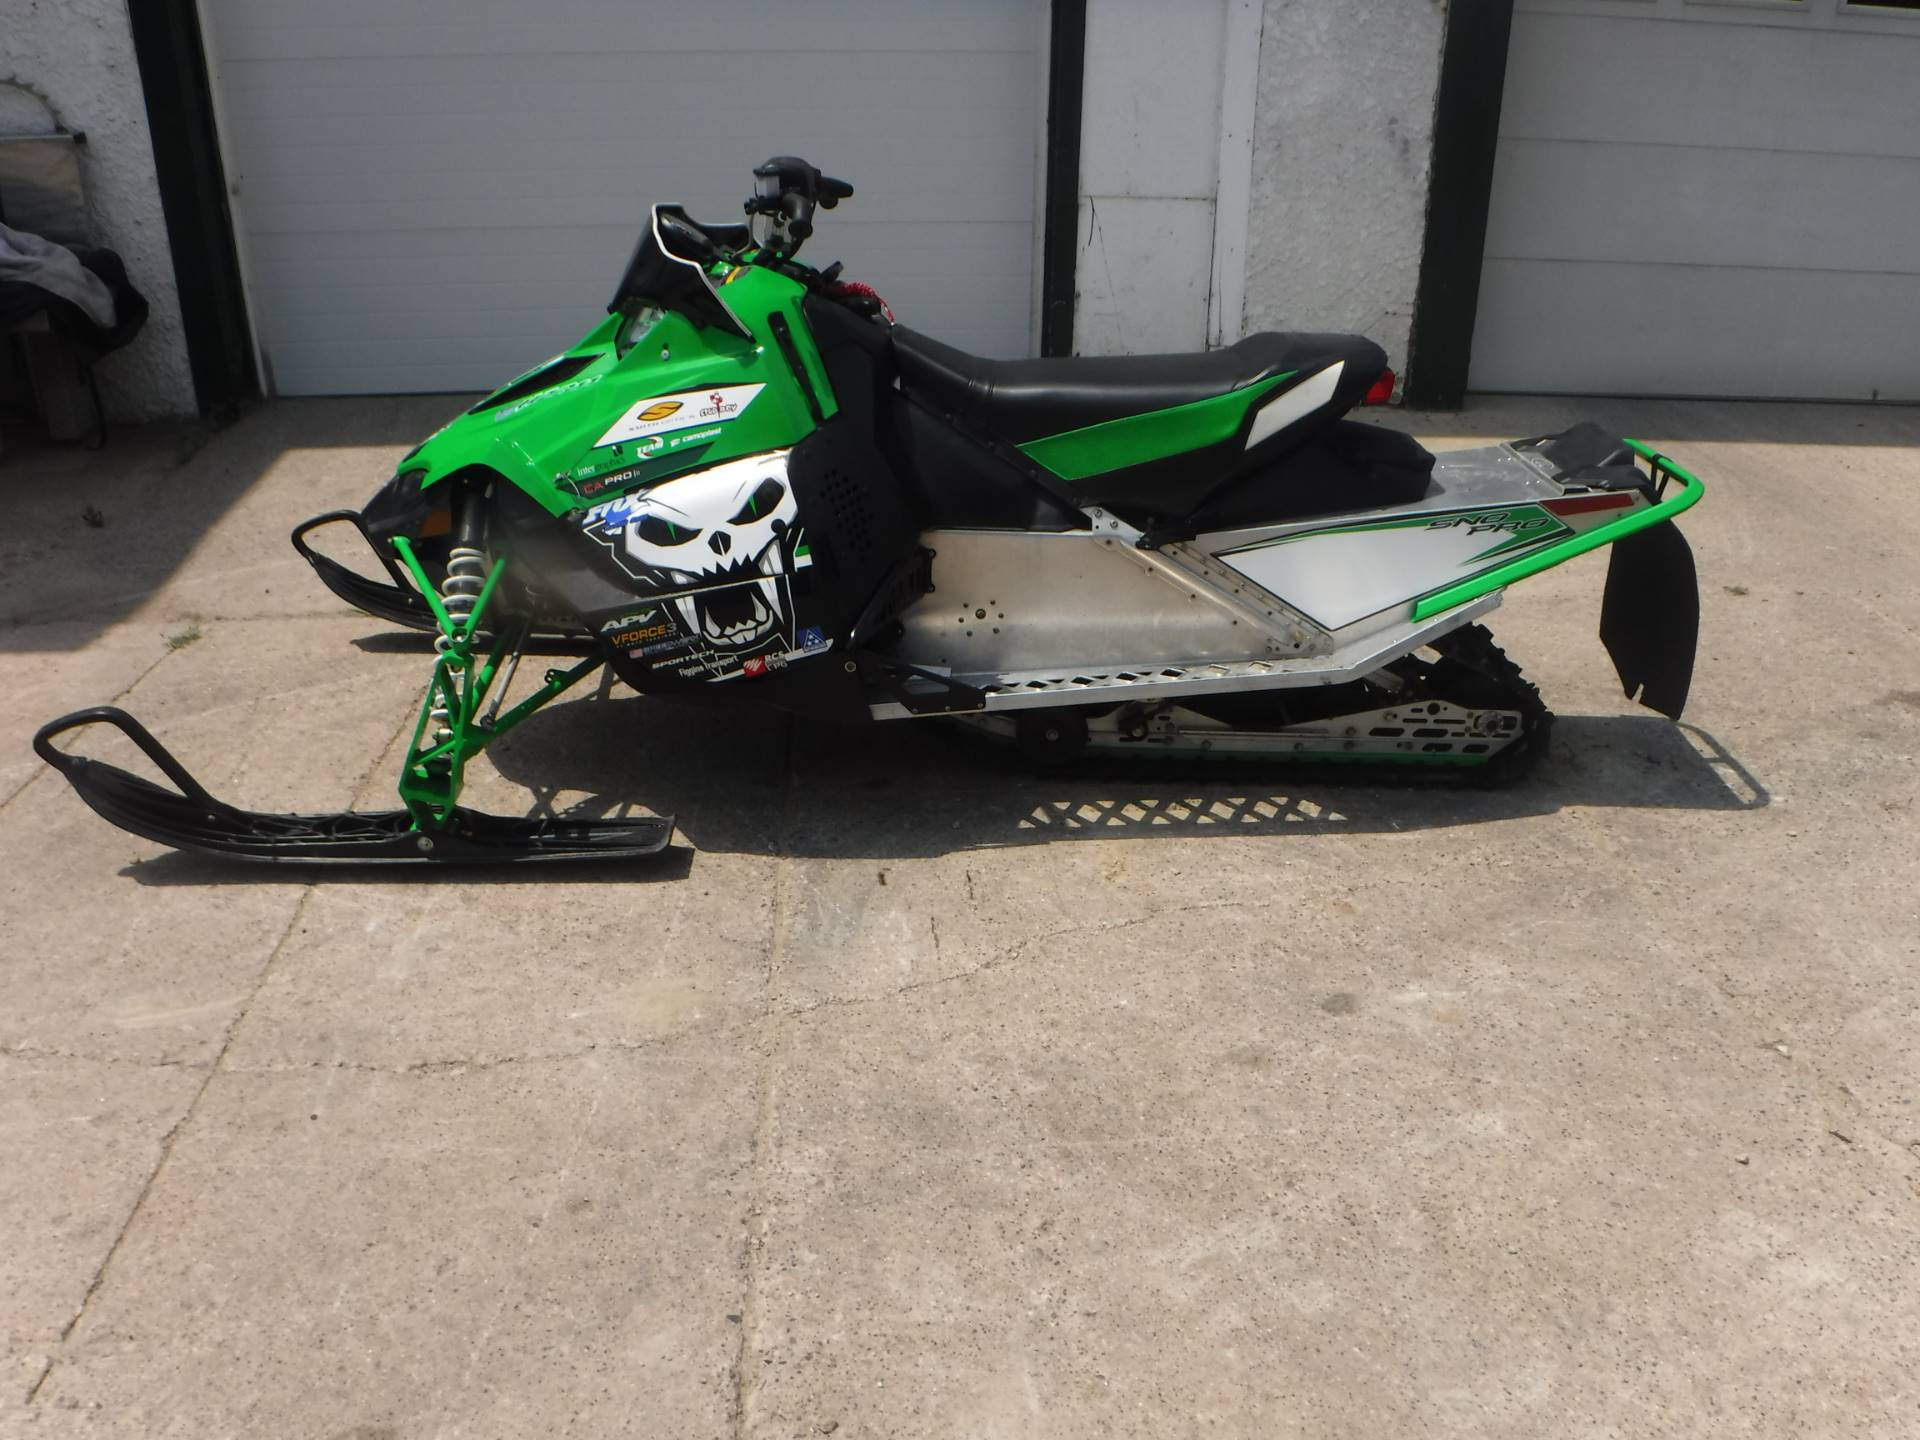 2012 Arctic Cat Sno Pro® 500 in Mazeppa, Minnesota - Photo 1